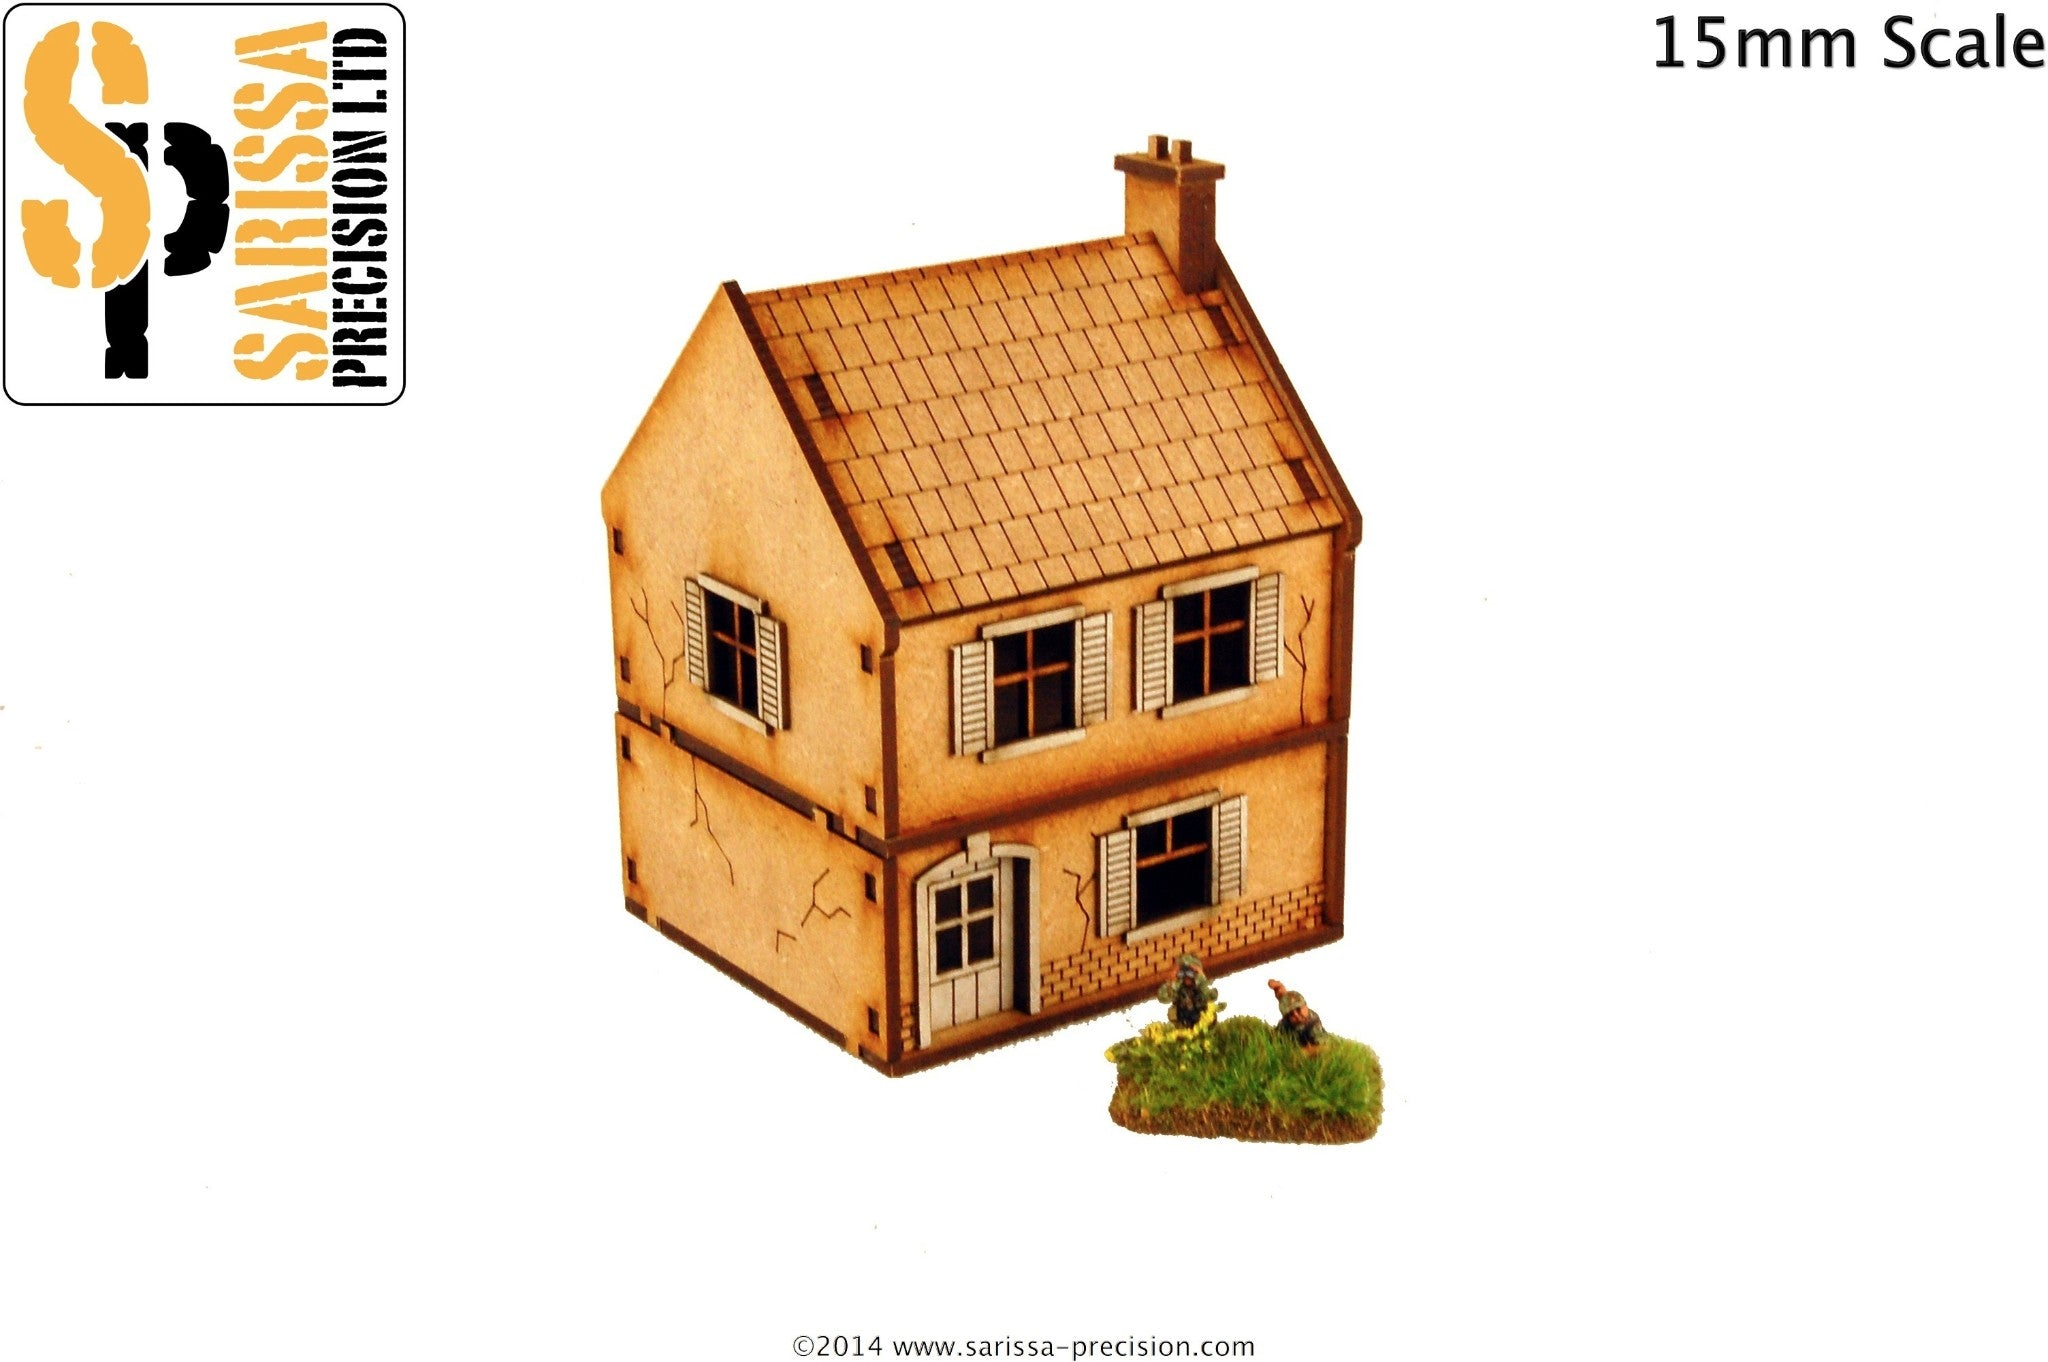 Small House - 15mm